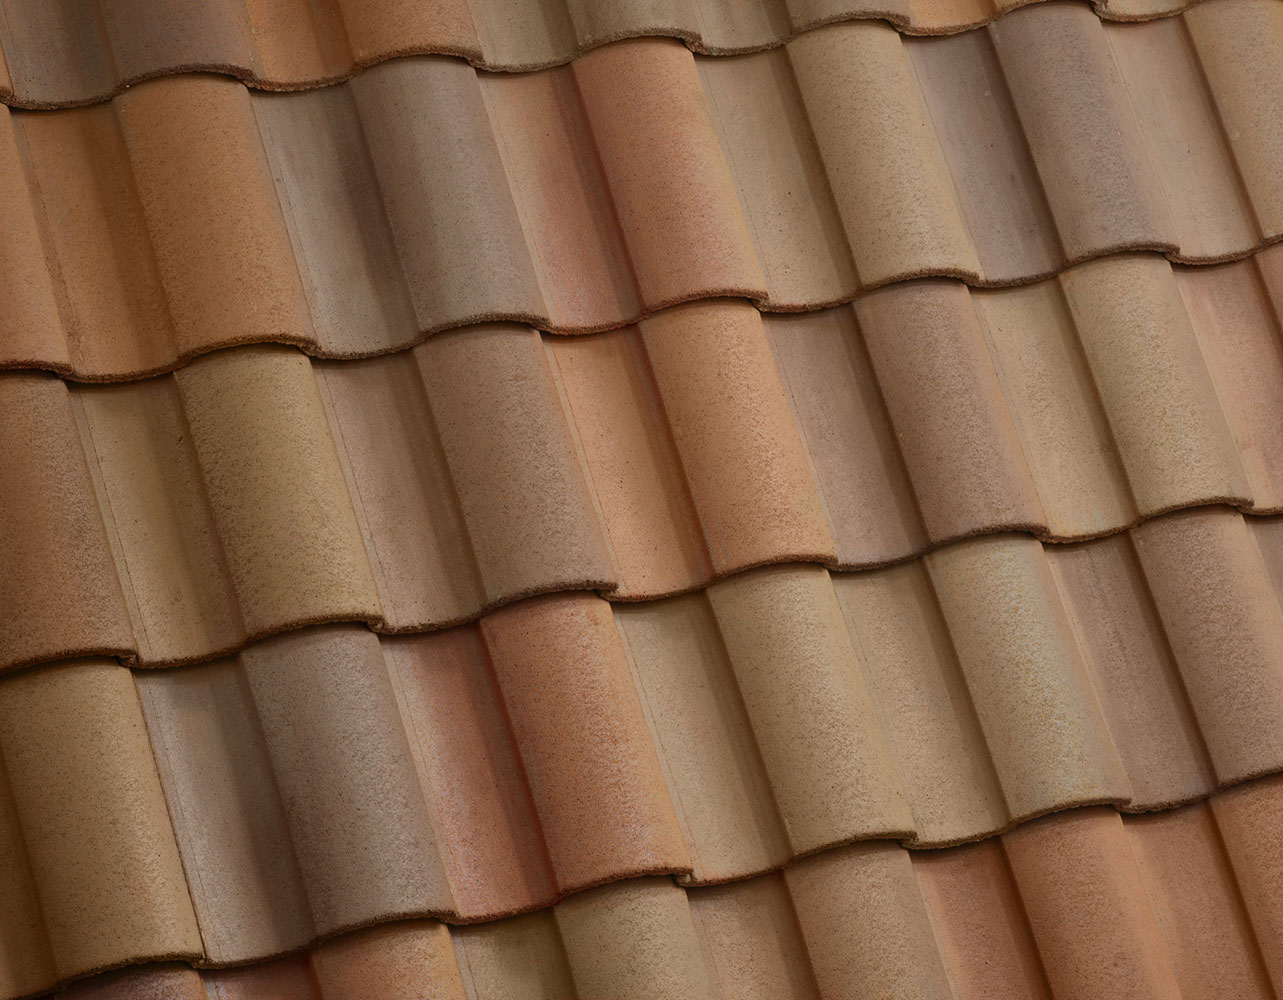 Download Hi Res Tile Image ... & LCC 8806 - Eagle Roofing